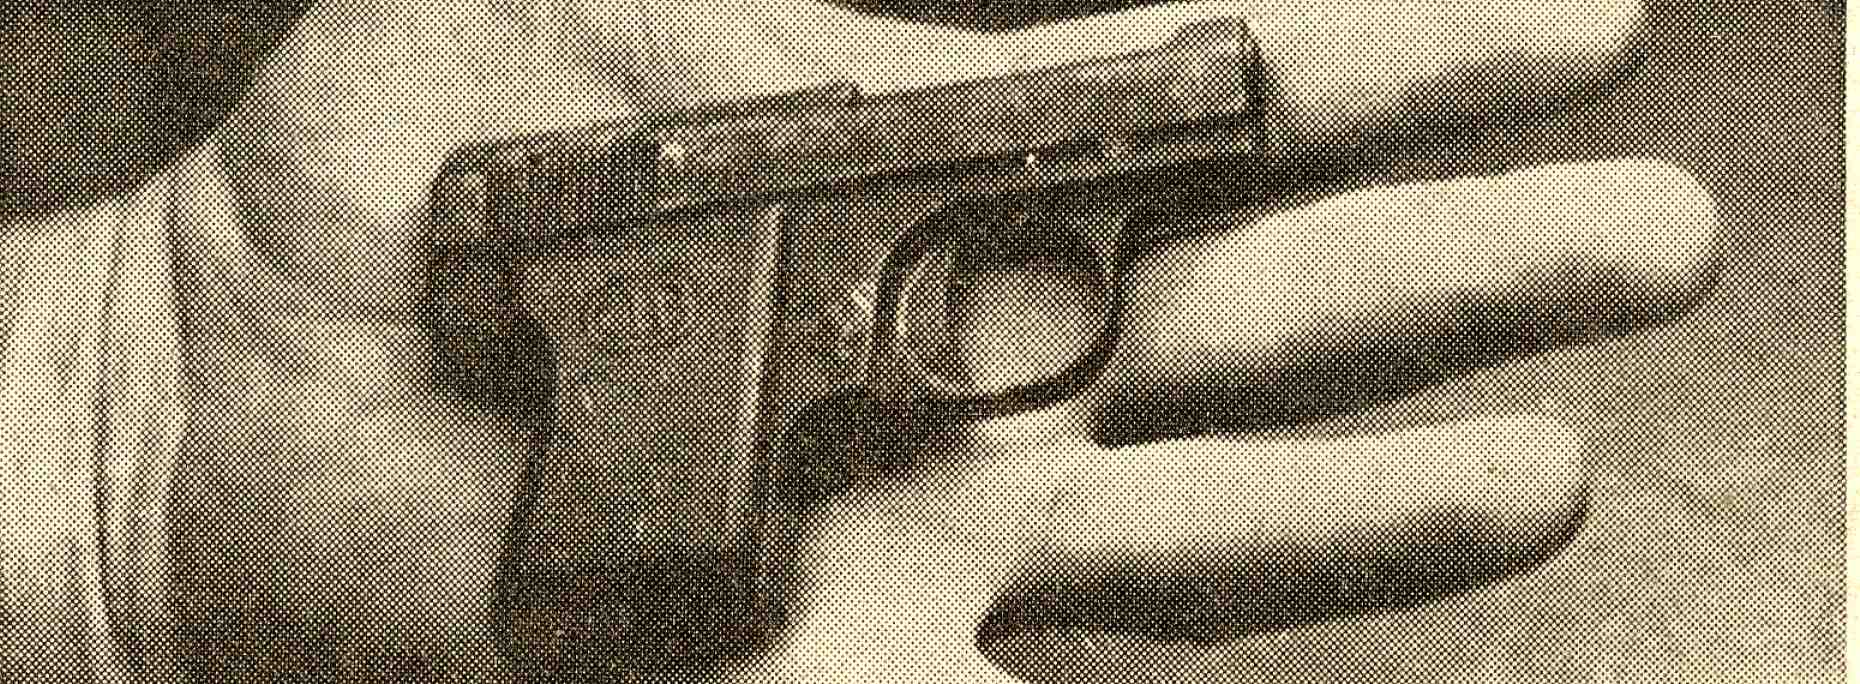 Pistol That Killed Margaret Phillips, 1969 image